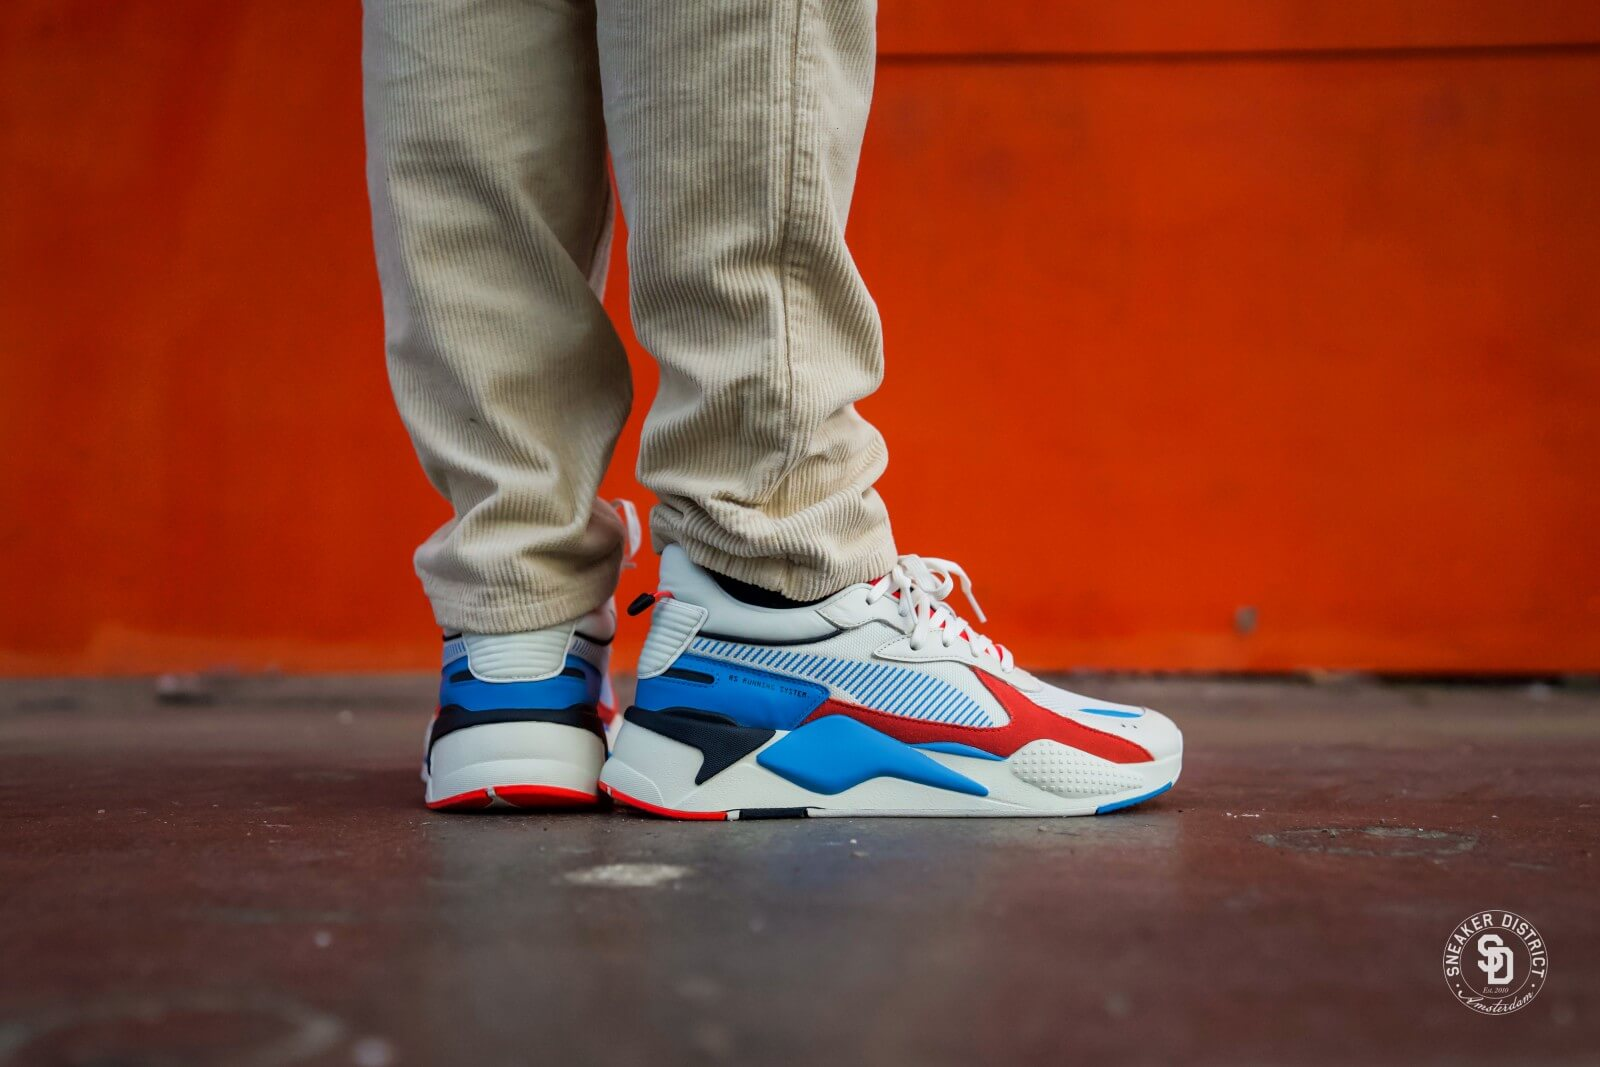 Puma RS-X Reinvention Whisper White/Red Blast - 0369579-01